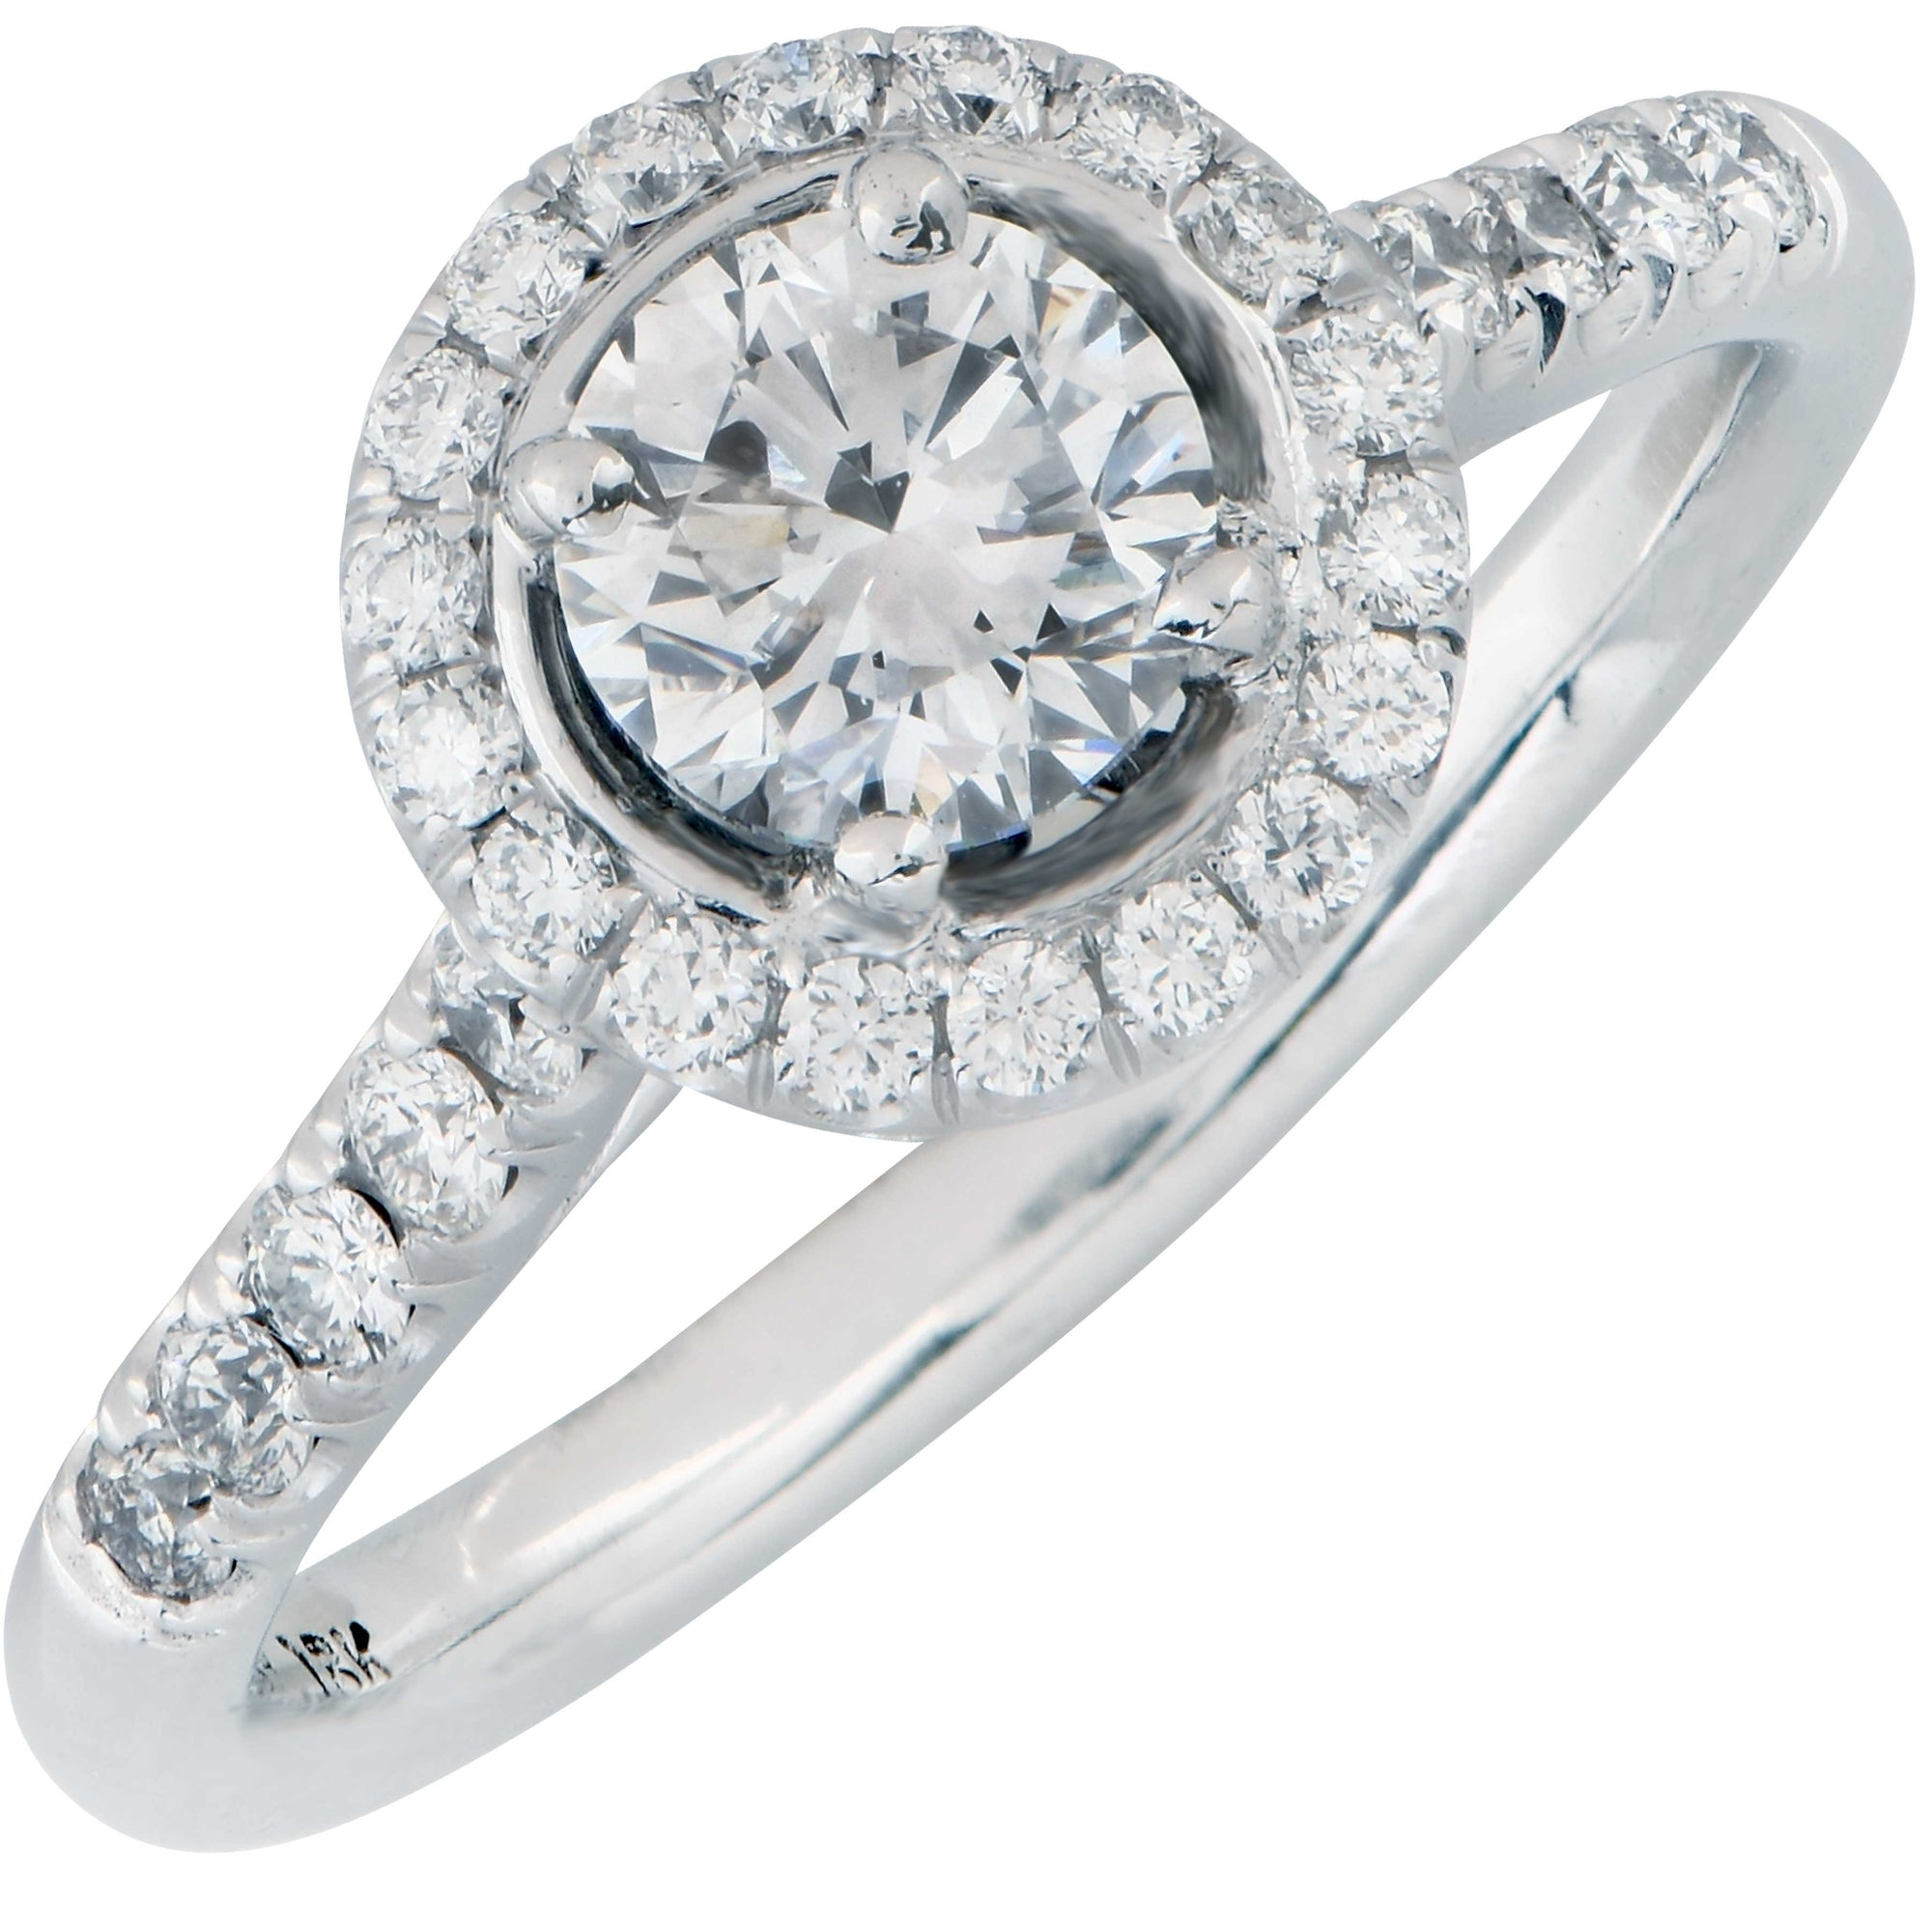 .70 Cts GIA D/VS2 Diamond Engagement Ring